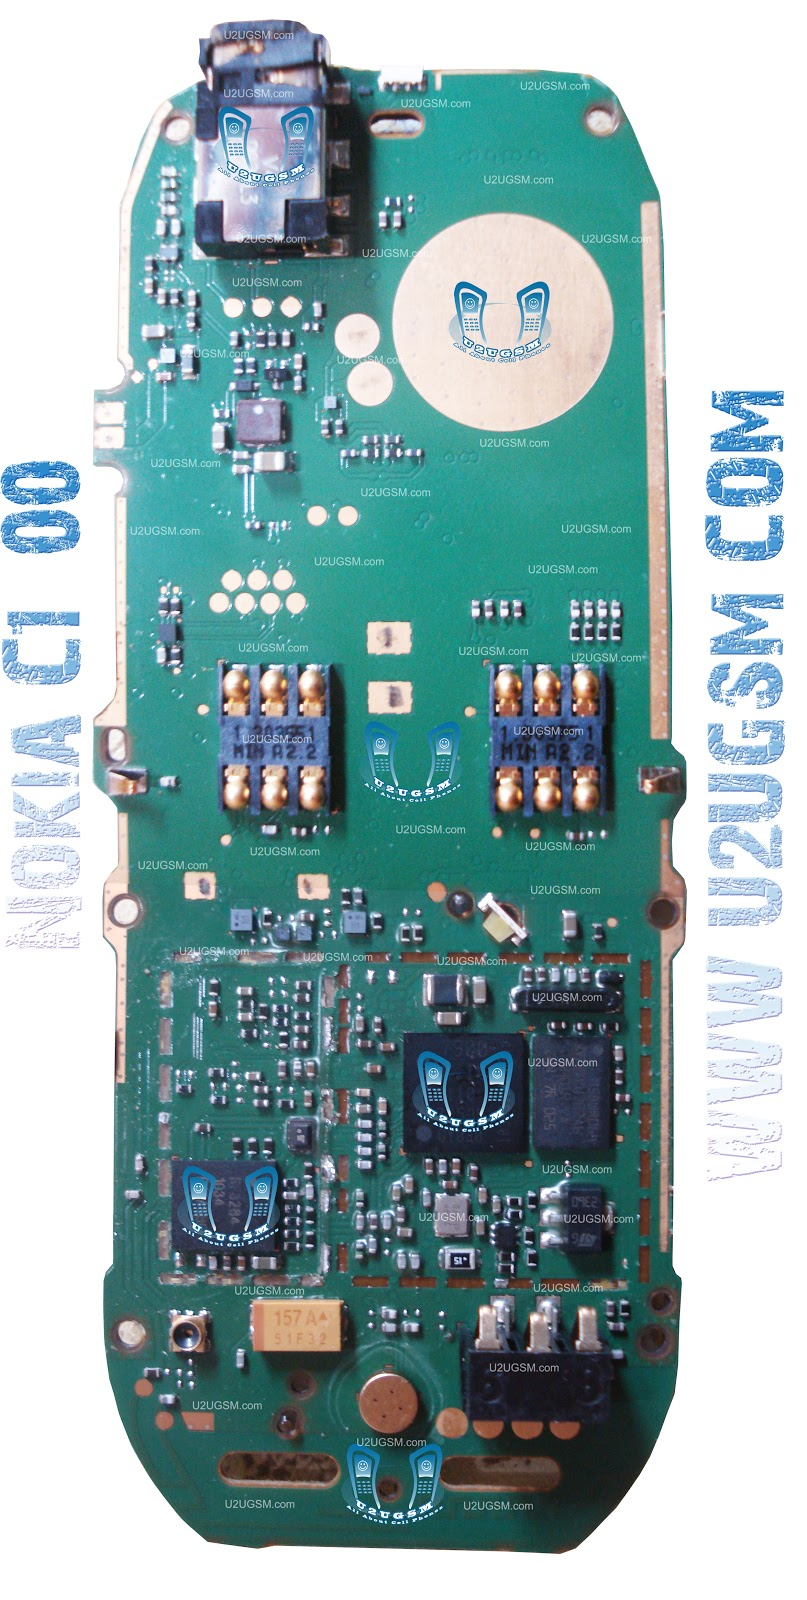 Nokia C1-00 Full PCB Diagram Mother Board Layout mobile repairing ...